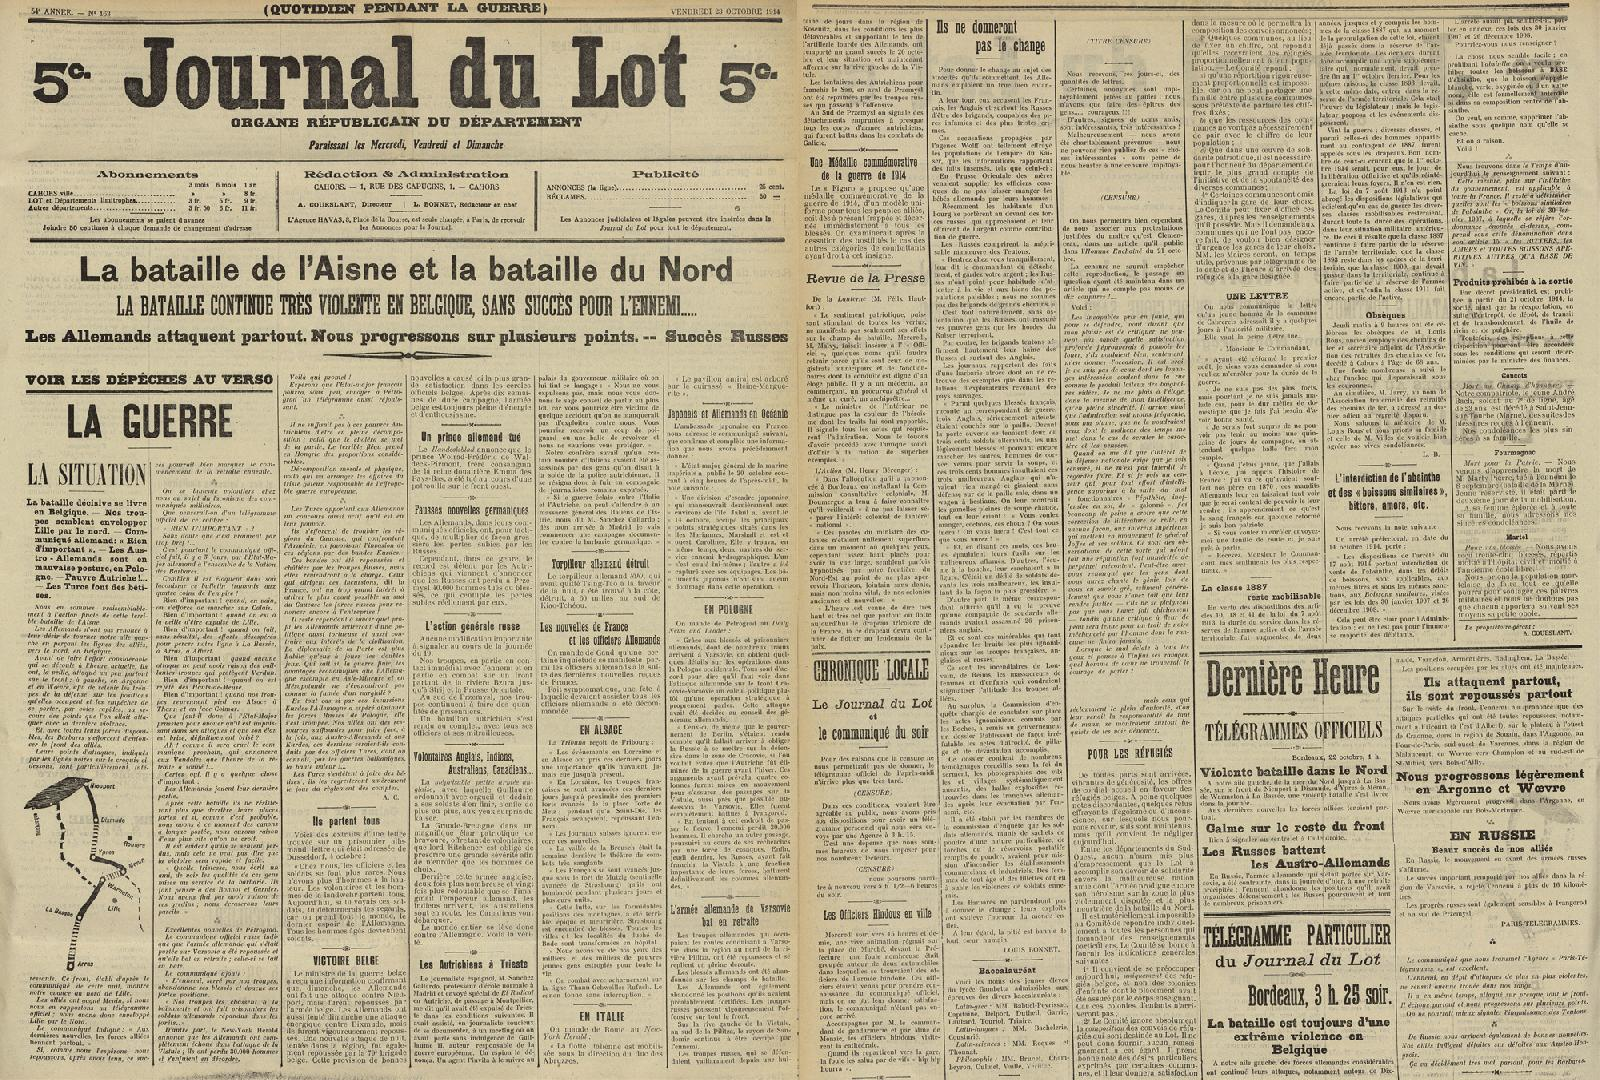 Journal du Lot du 23 octobre 1914